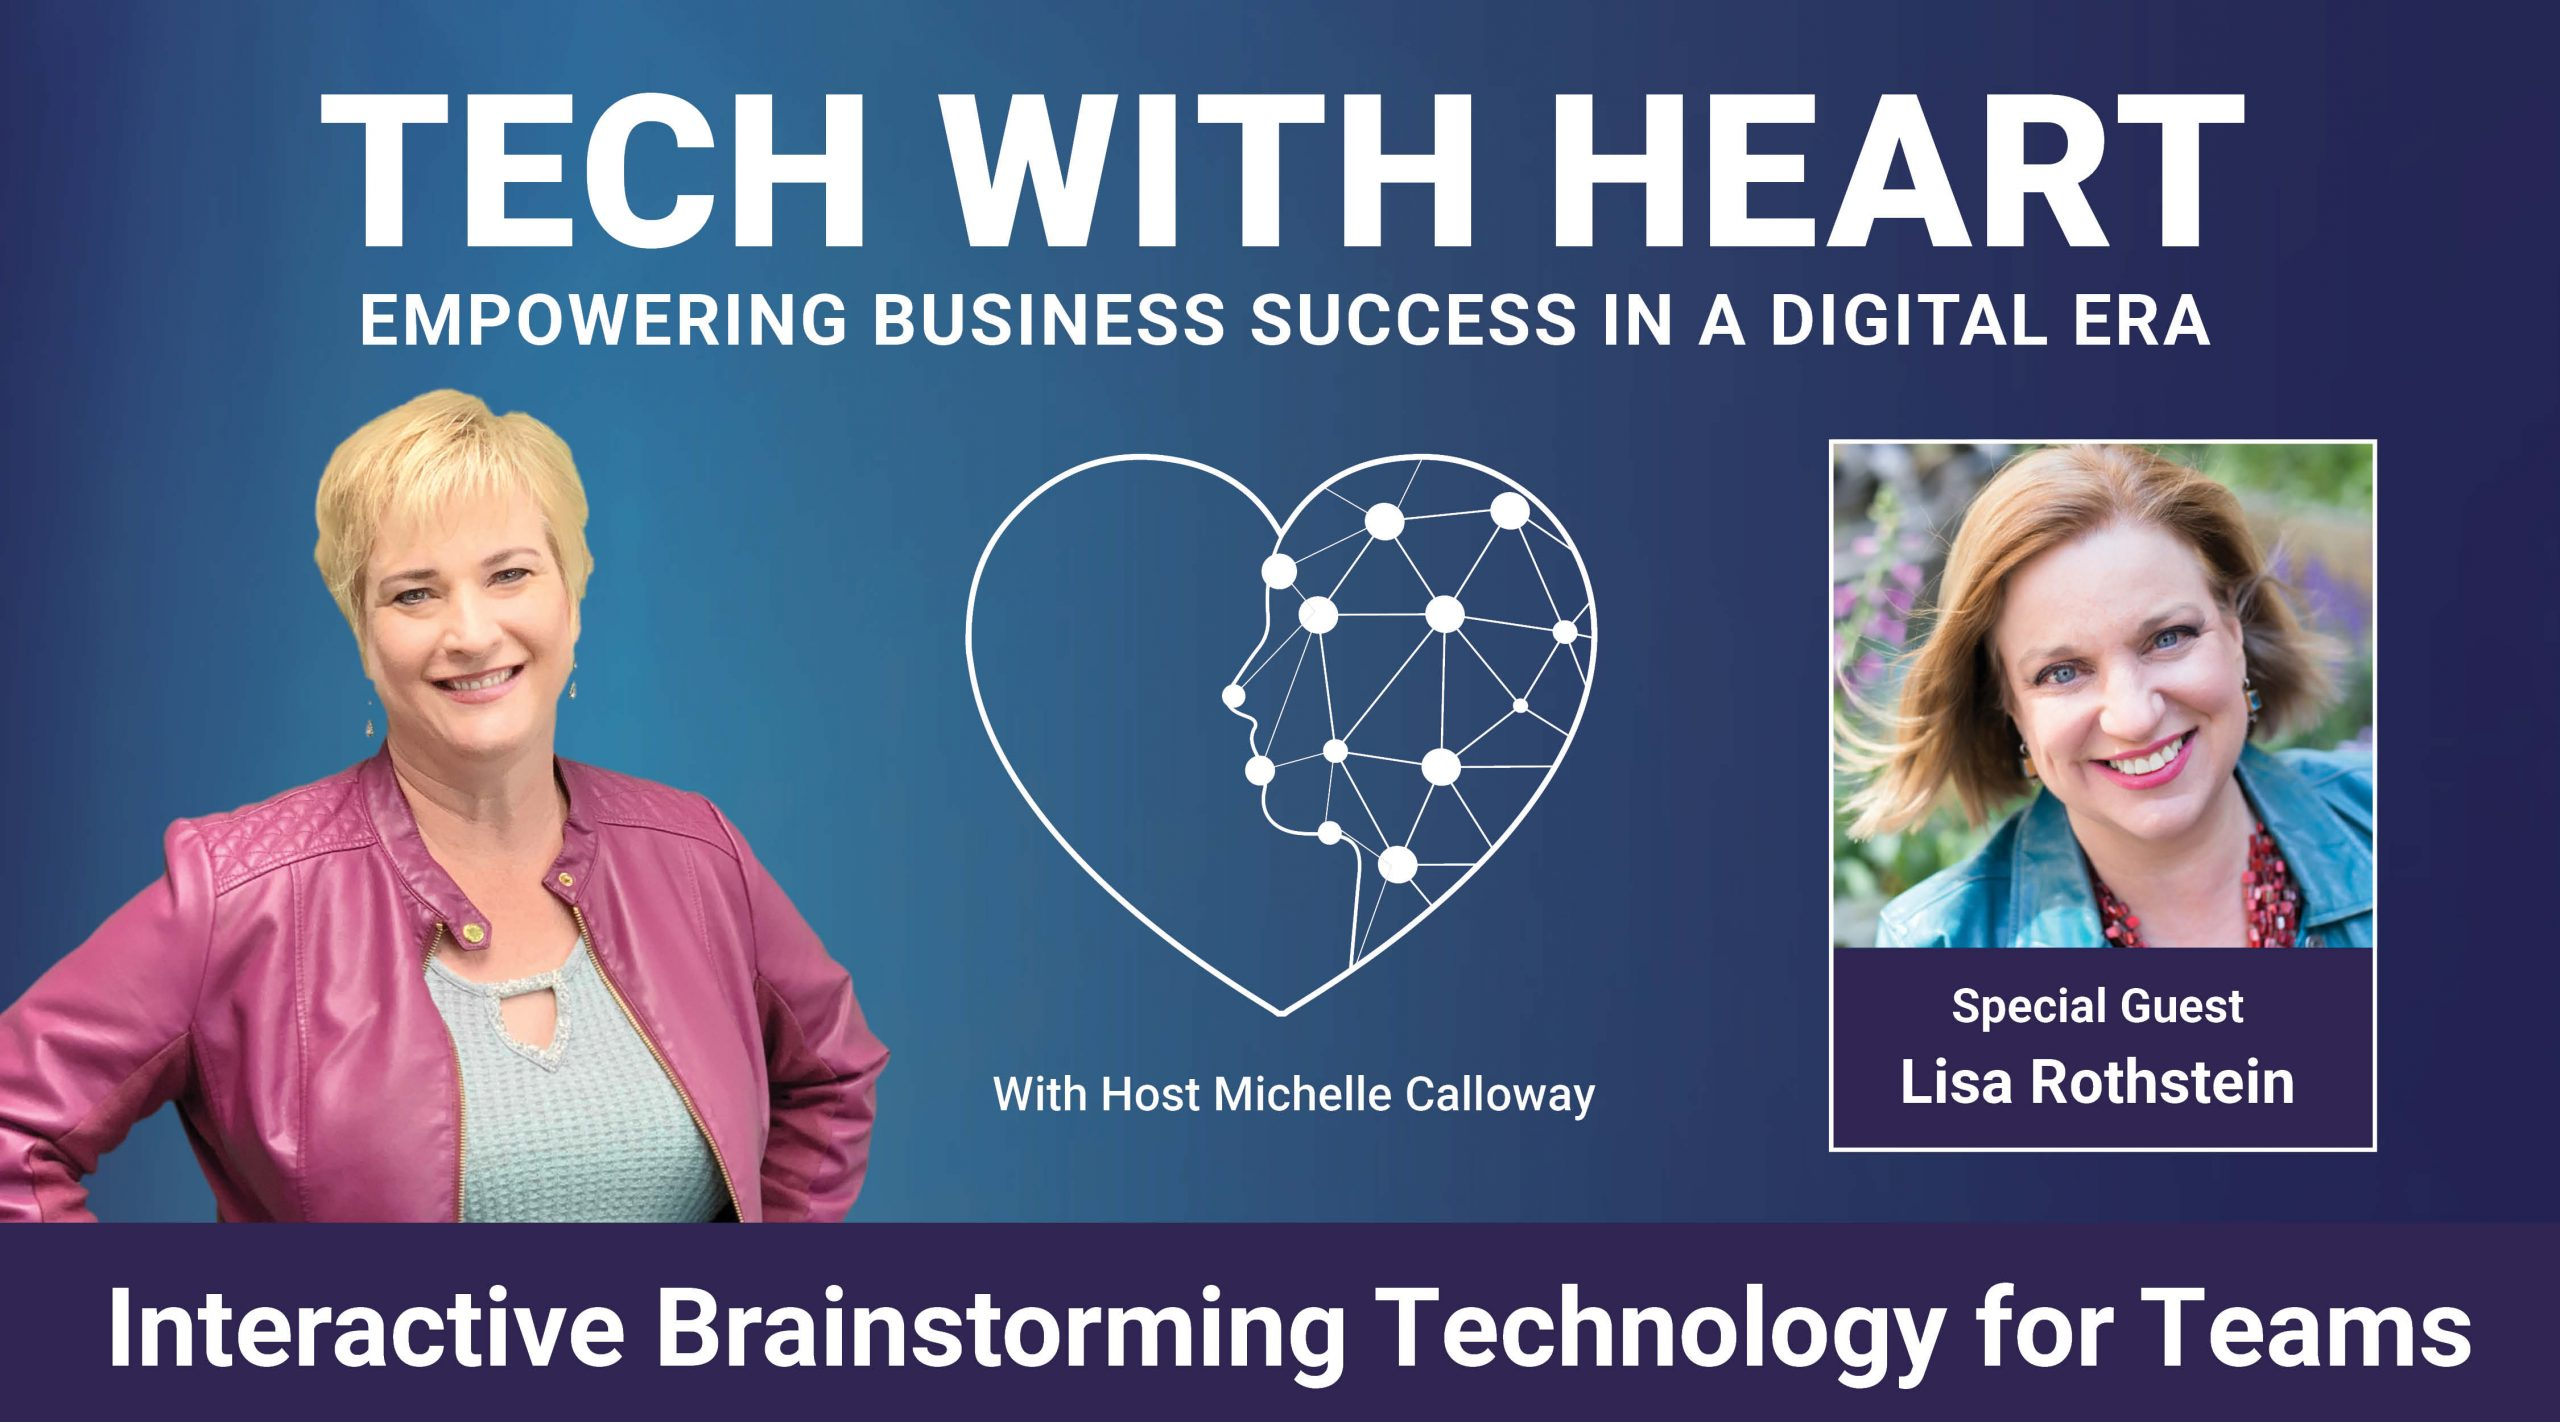 Interactive Brainstorming Technology for Teams with Lisa Rothstein